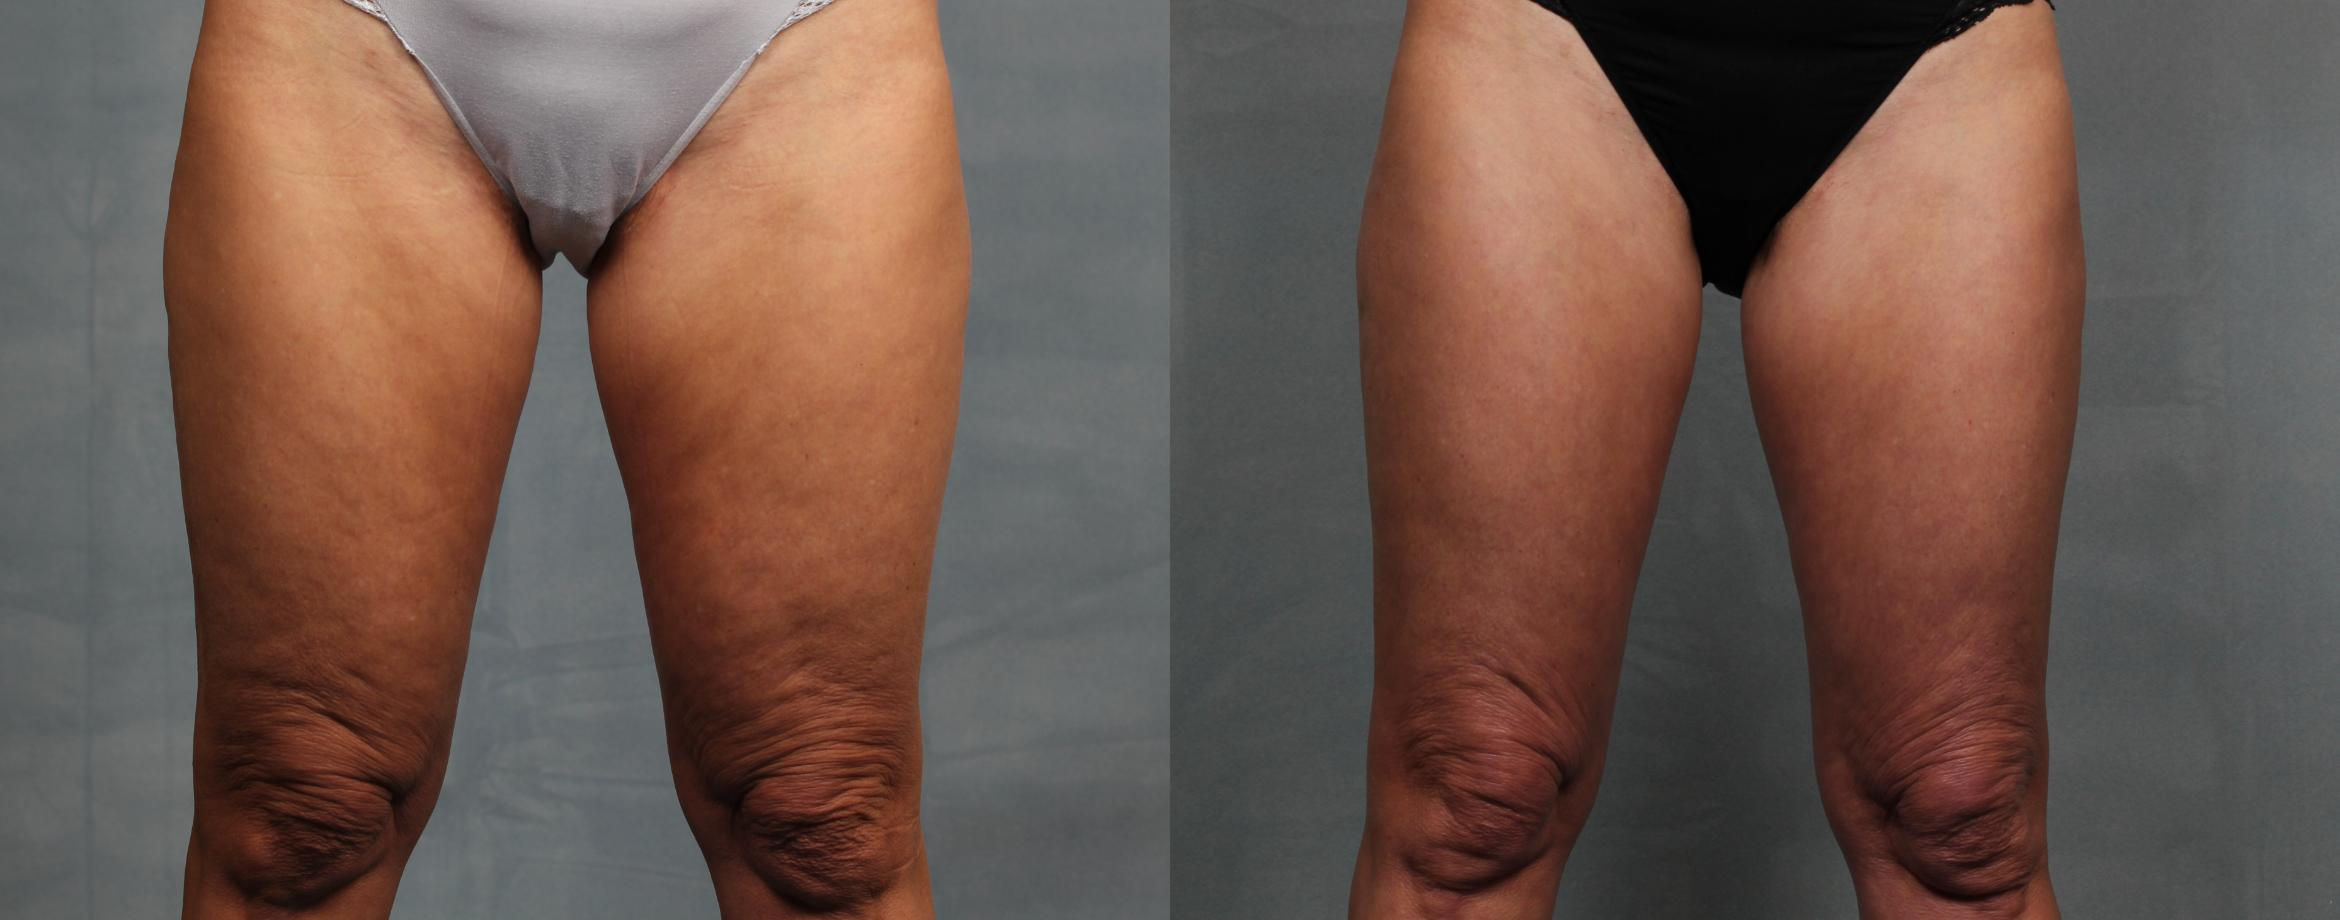 Cellulite Treatments Case 614 Before & After Front | Louisville & Lexington, KY | CaloAesthetics® Plastic Surgery Center